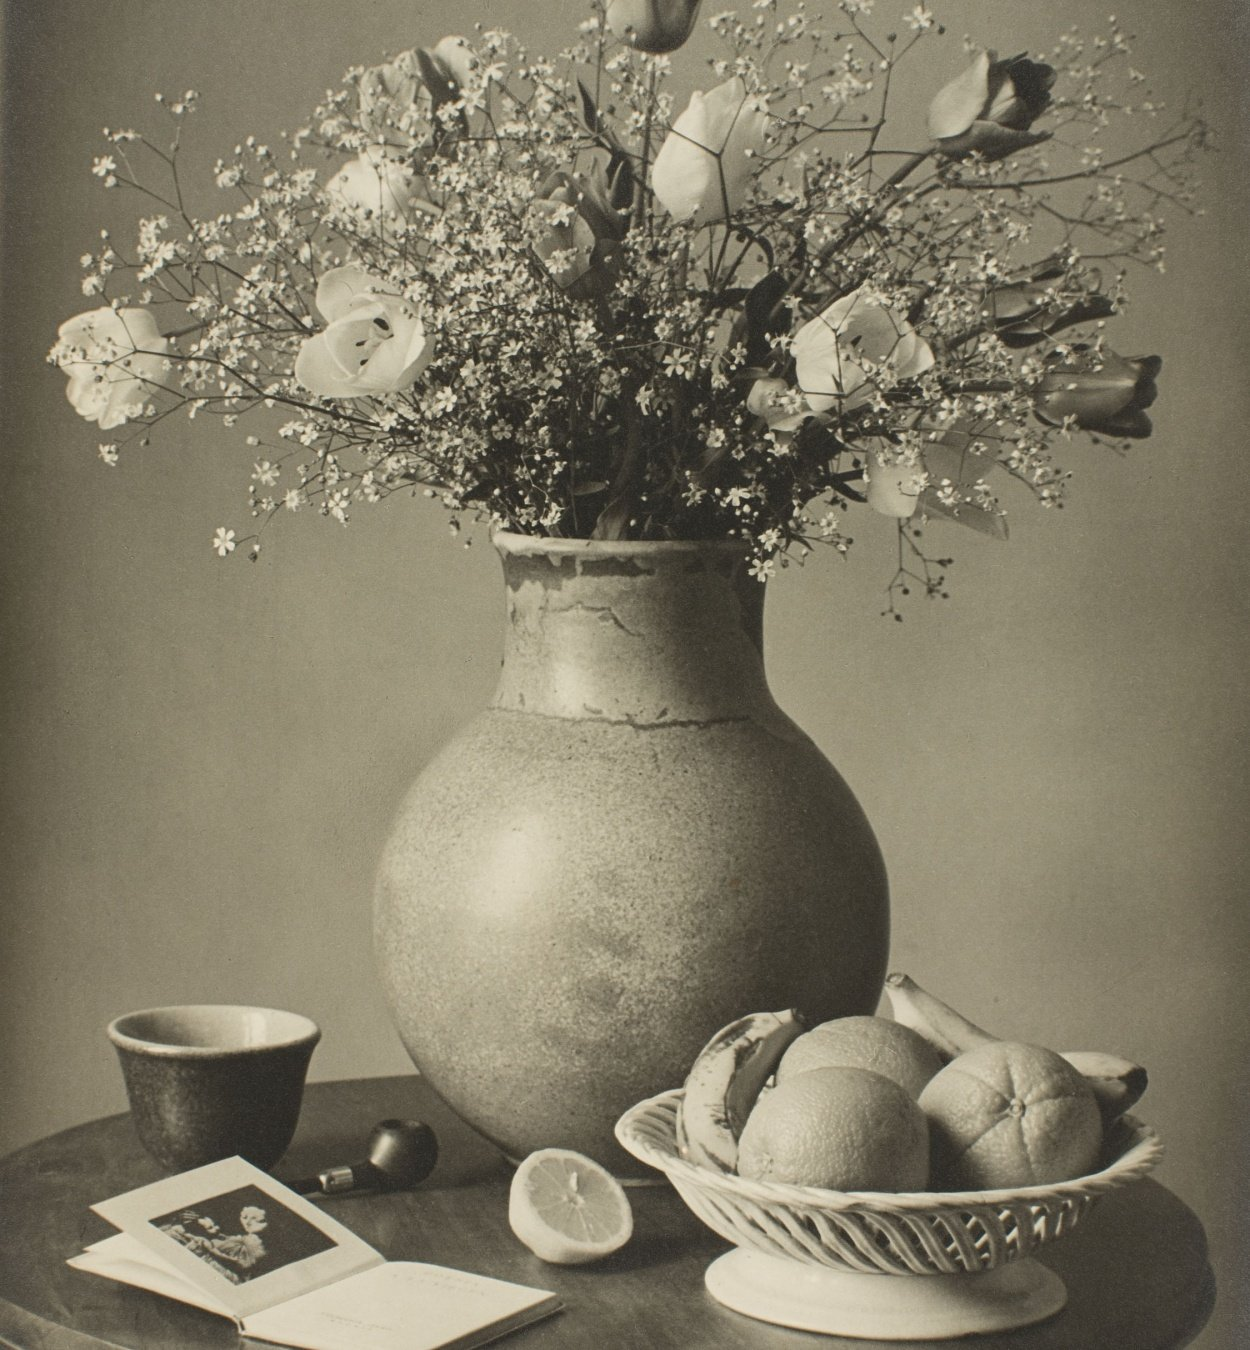 Otho Lloyd - [Still life] - Undated